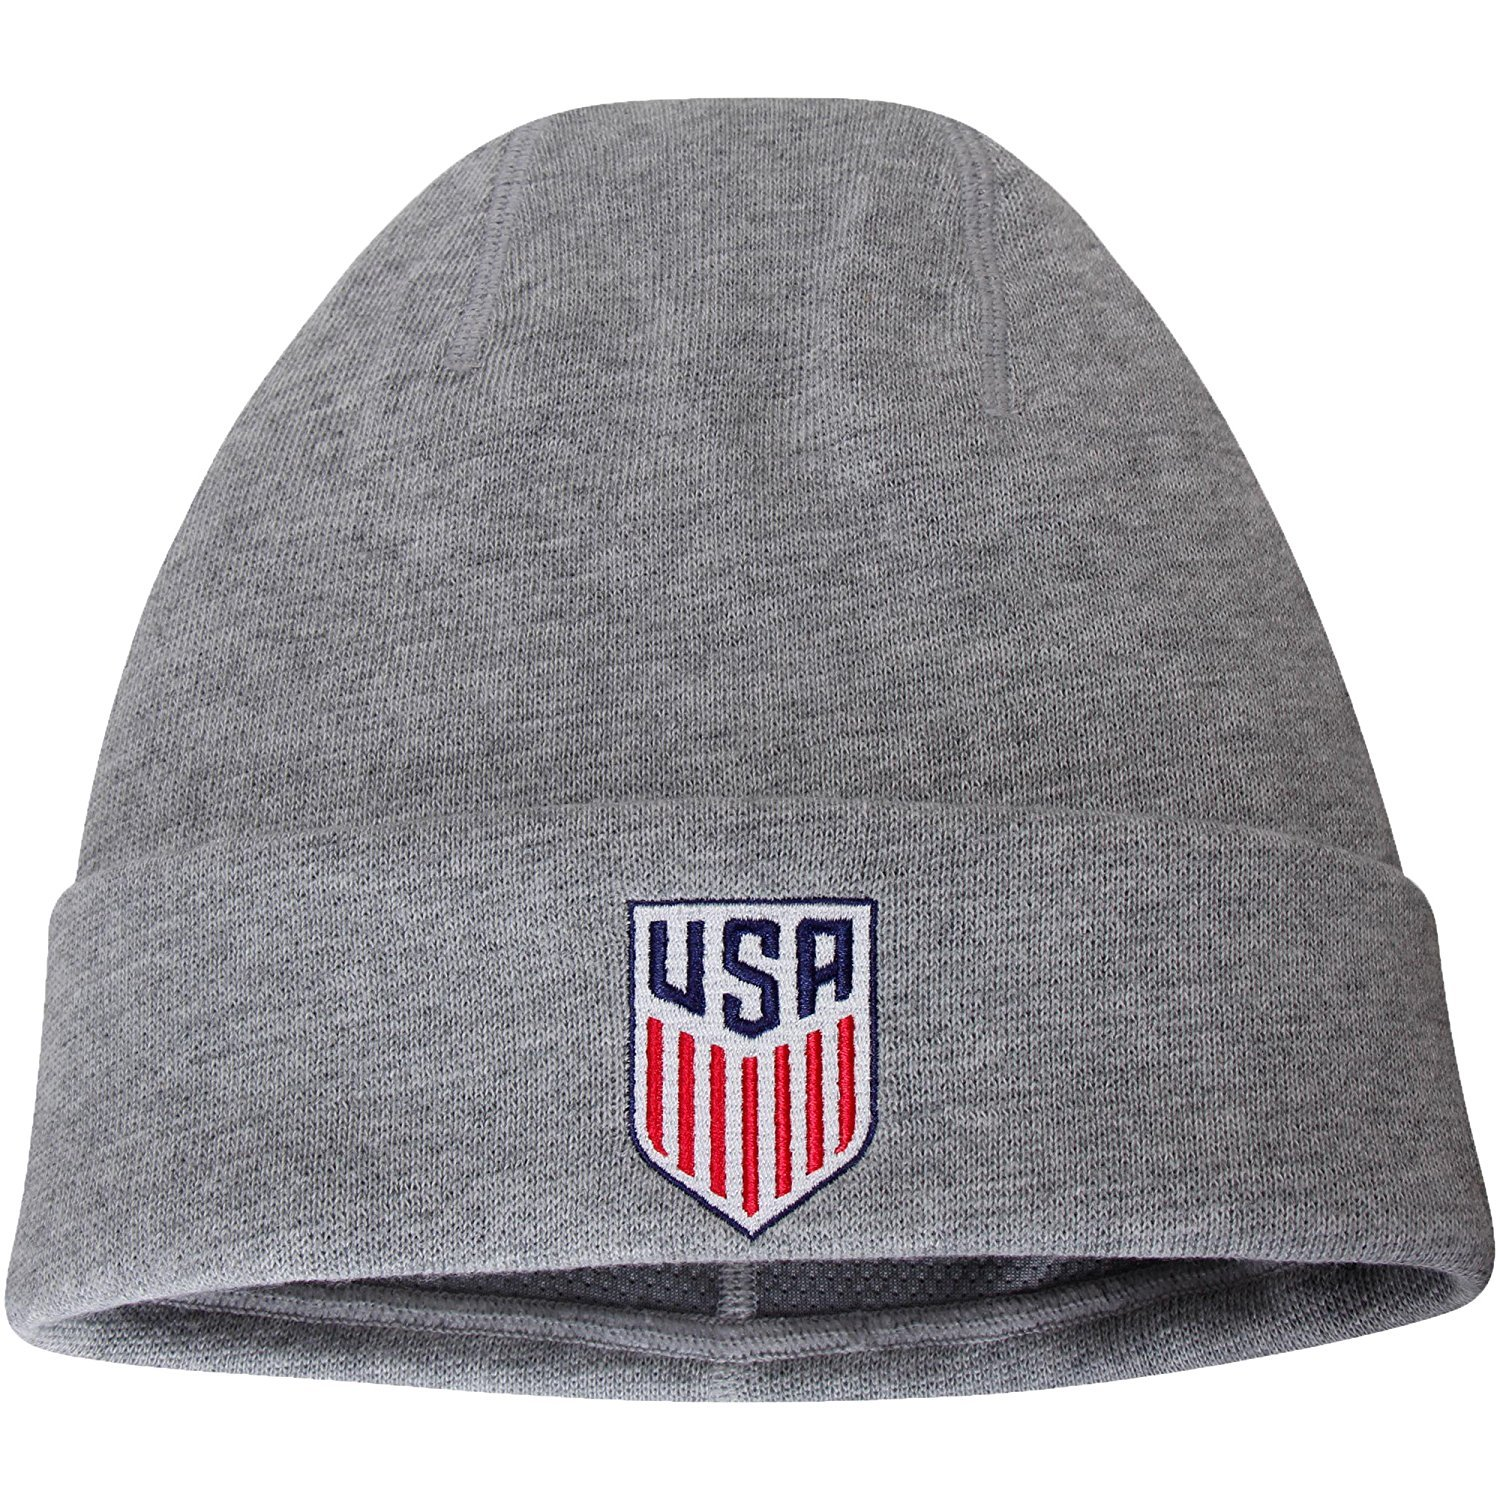 be2d7853a553d ... discount code for amazon nike usa national soccer team performance  cuffed knit hat sports outdoors 9bfde